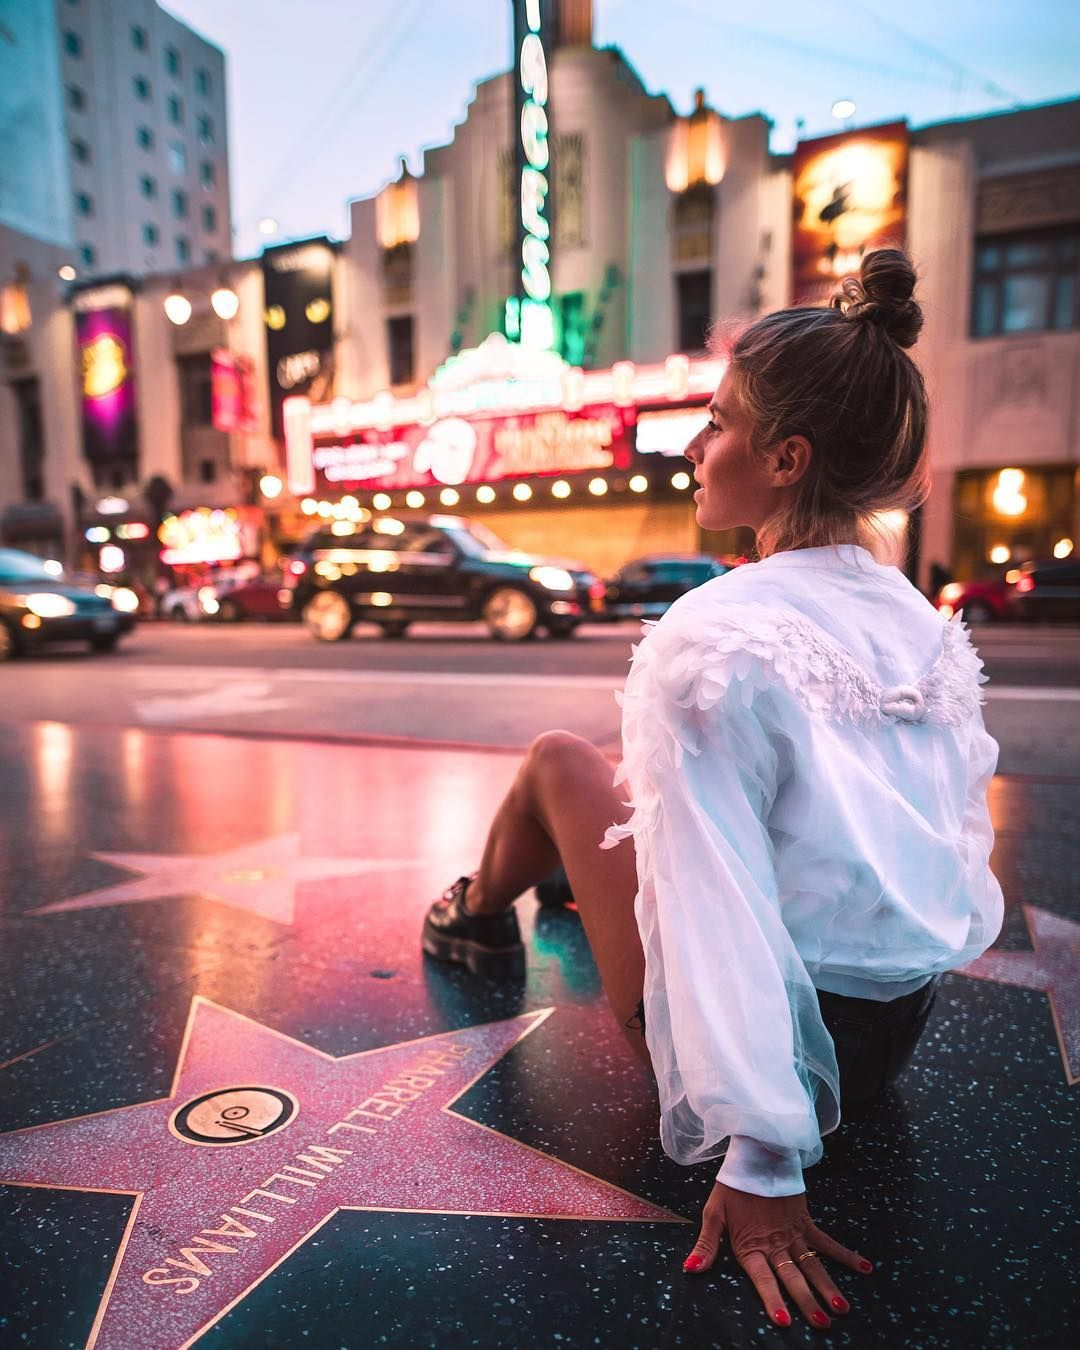 Hollywood Walk Of Fame Debi Flugge Matching With The City Of Angels In Misssixty Misssi Los Angeles Pictures California Photography California Pictures